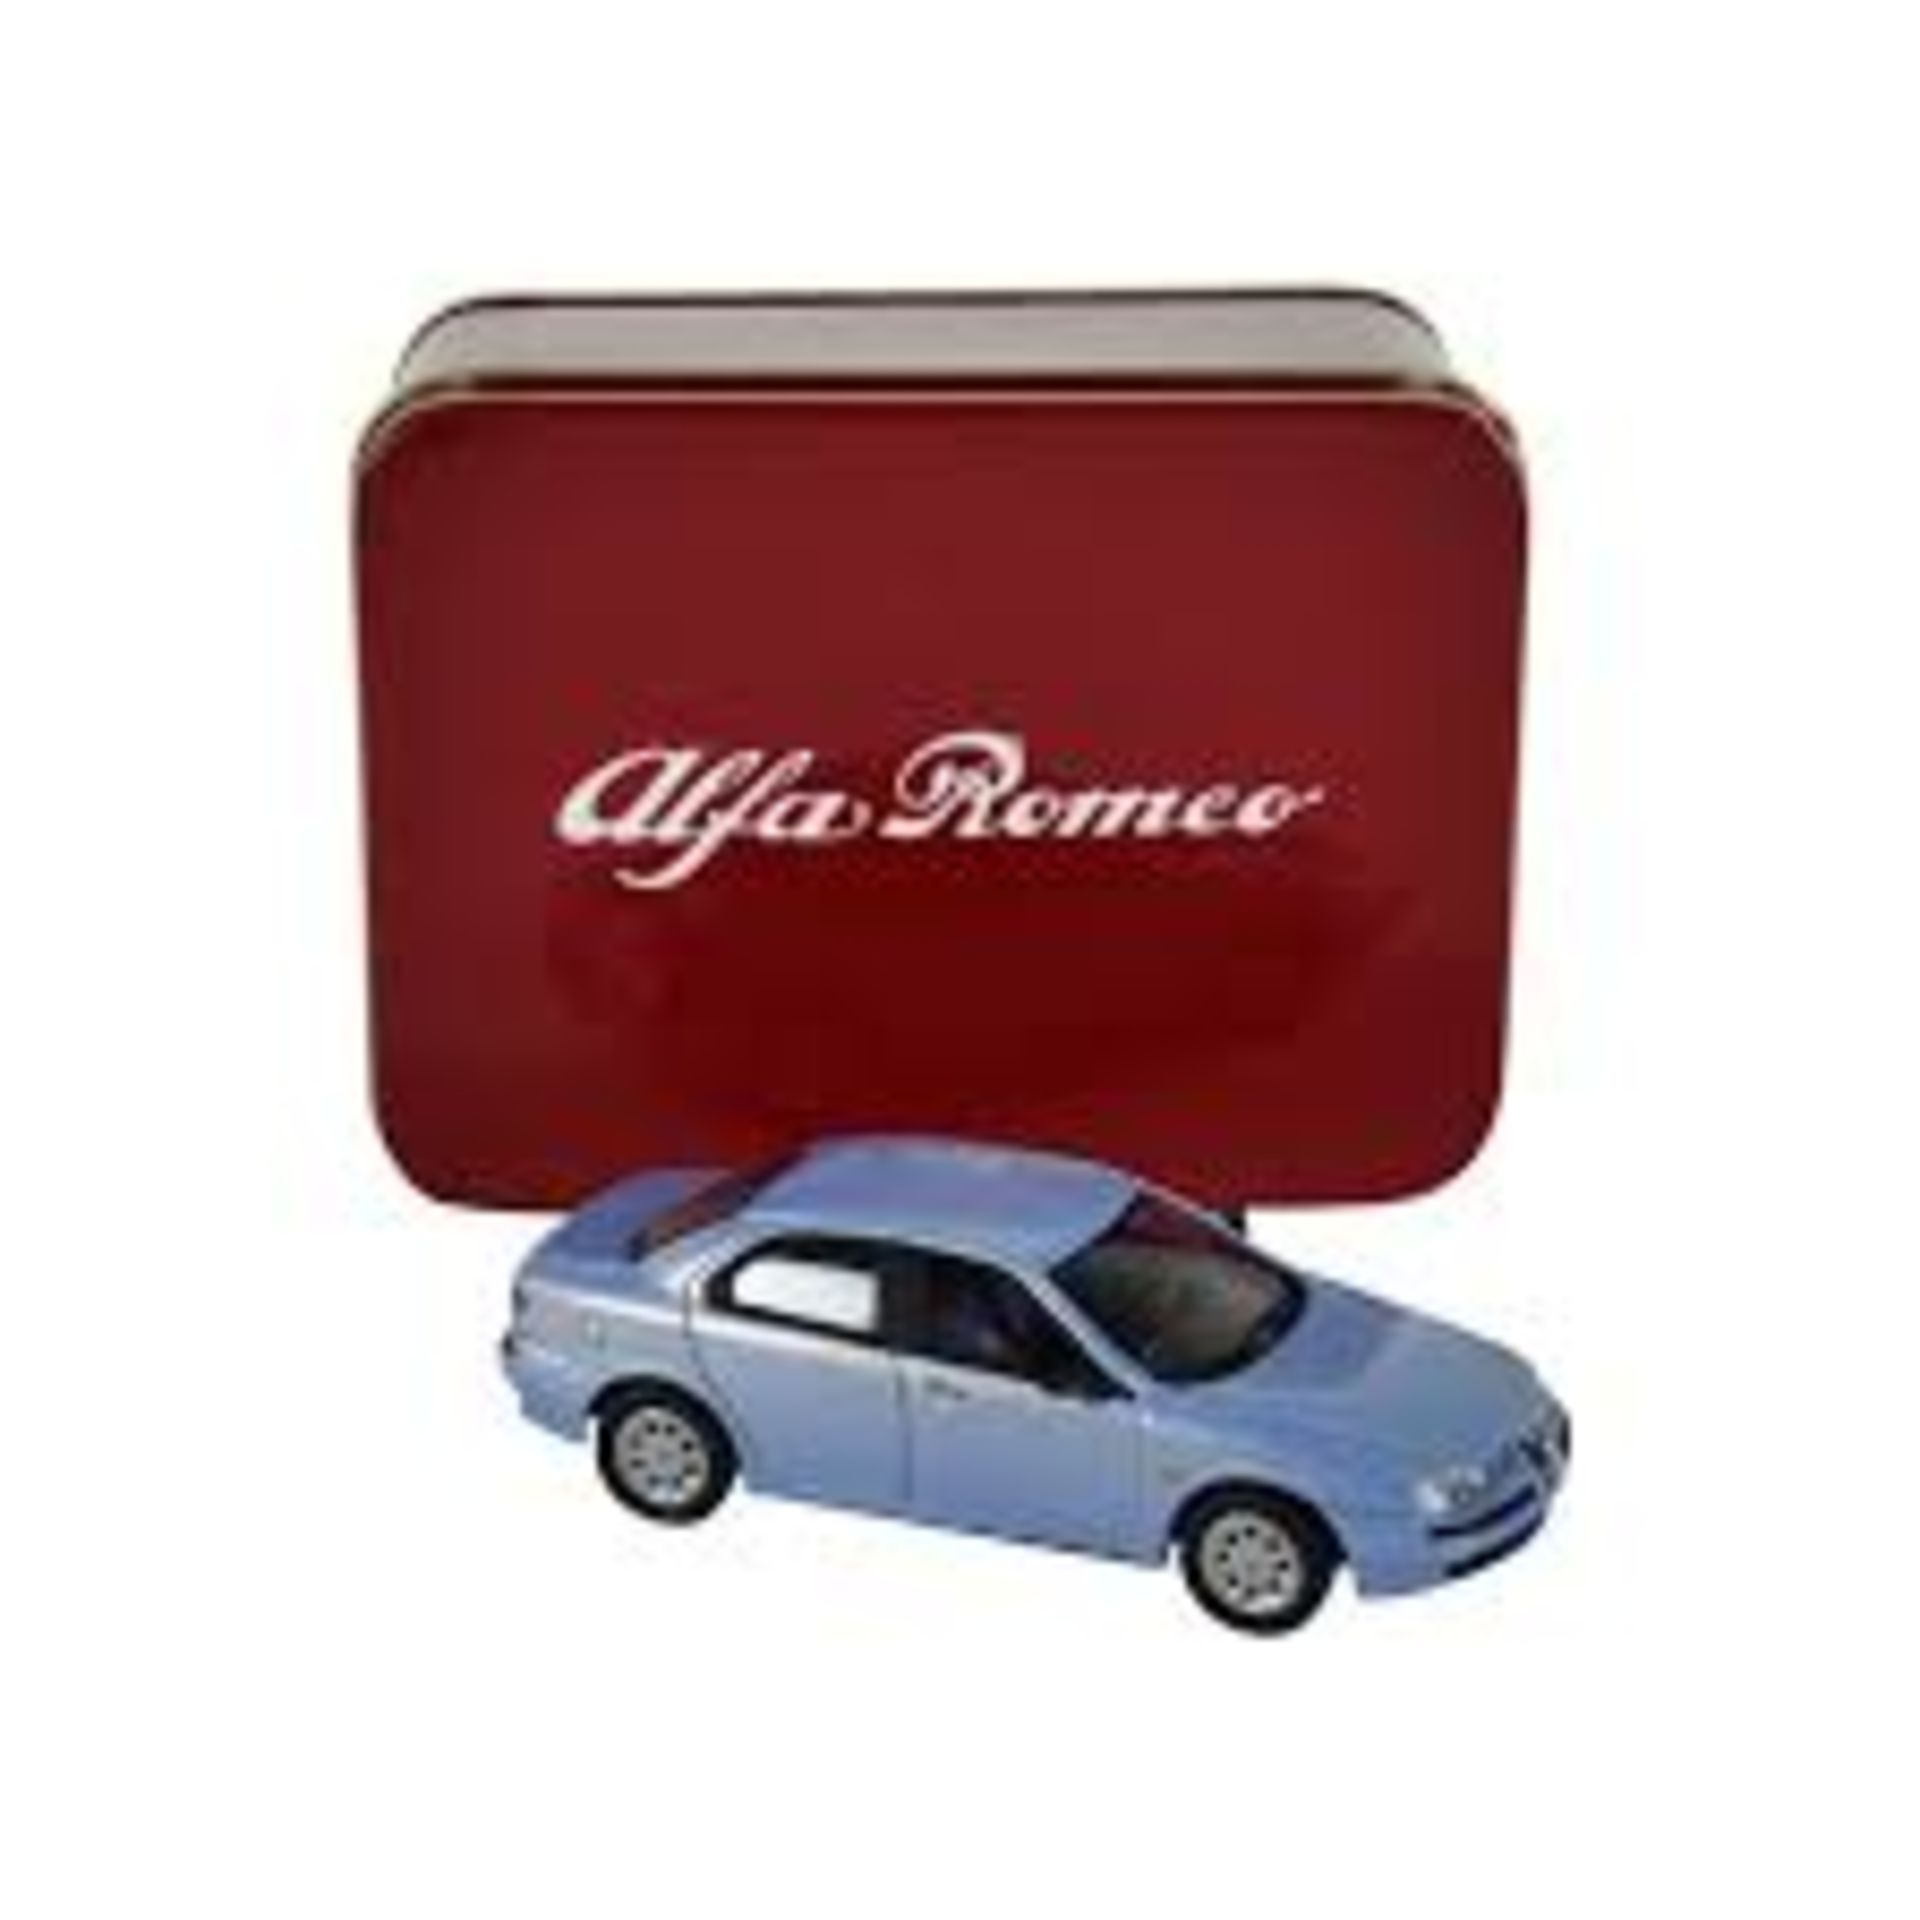 Lot 10365 - V Brand New 1/43 Diecast 1998 Alfa Romeo 156 - eBay Price £16.99